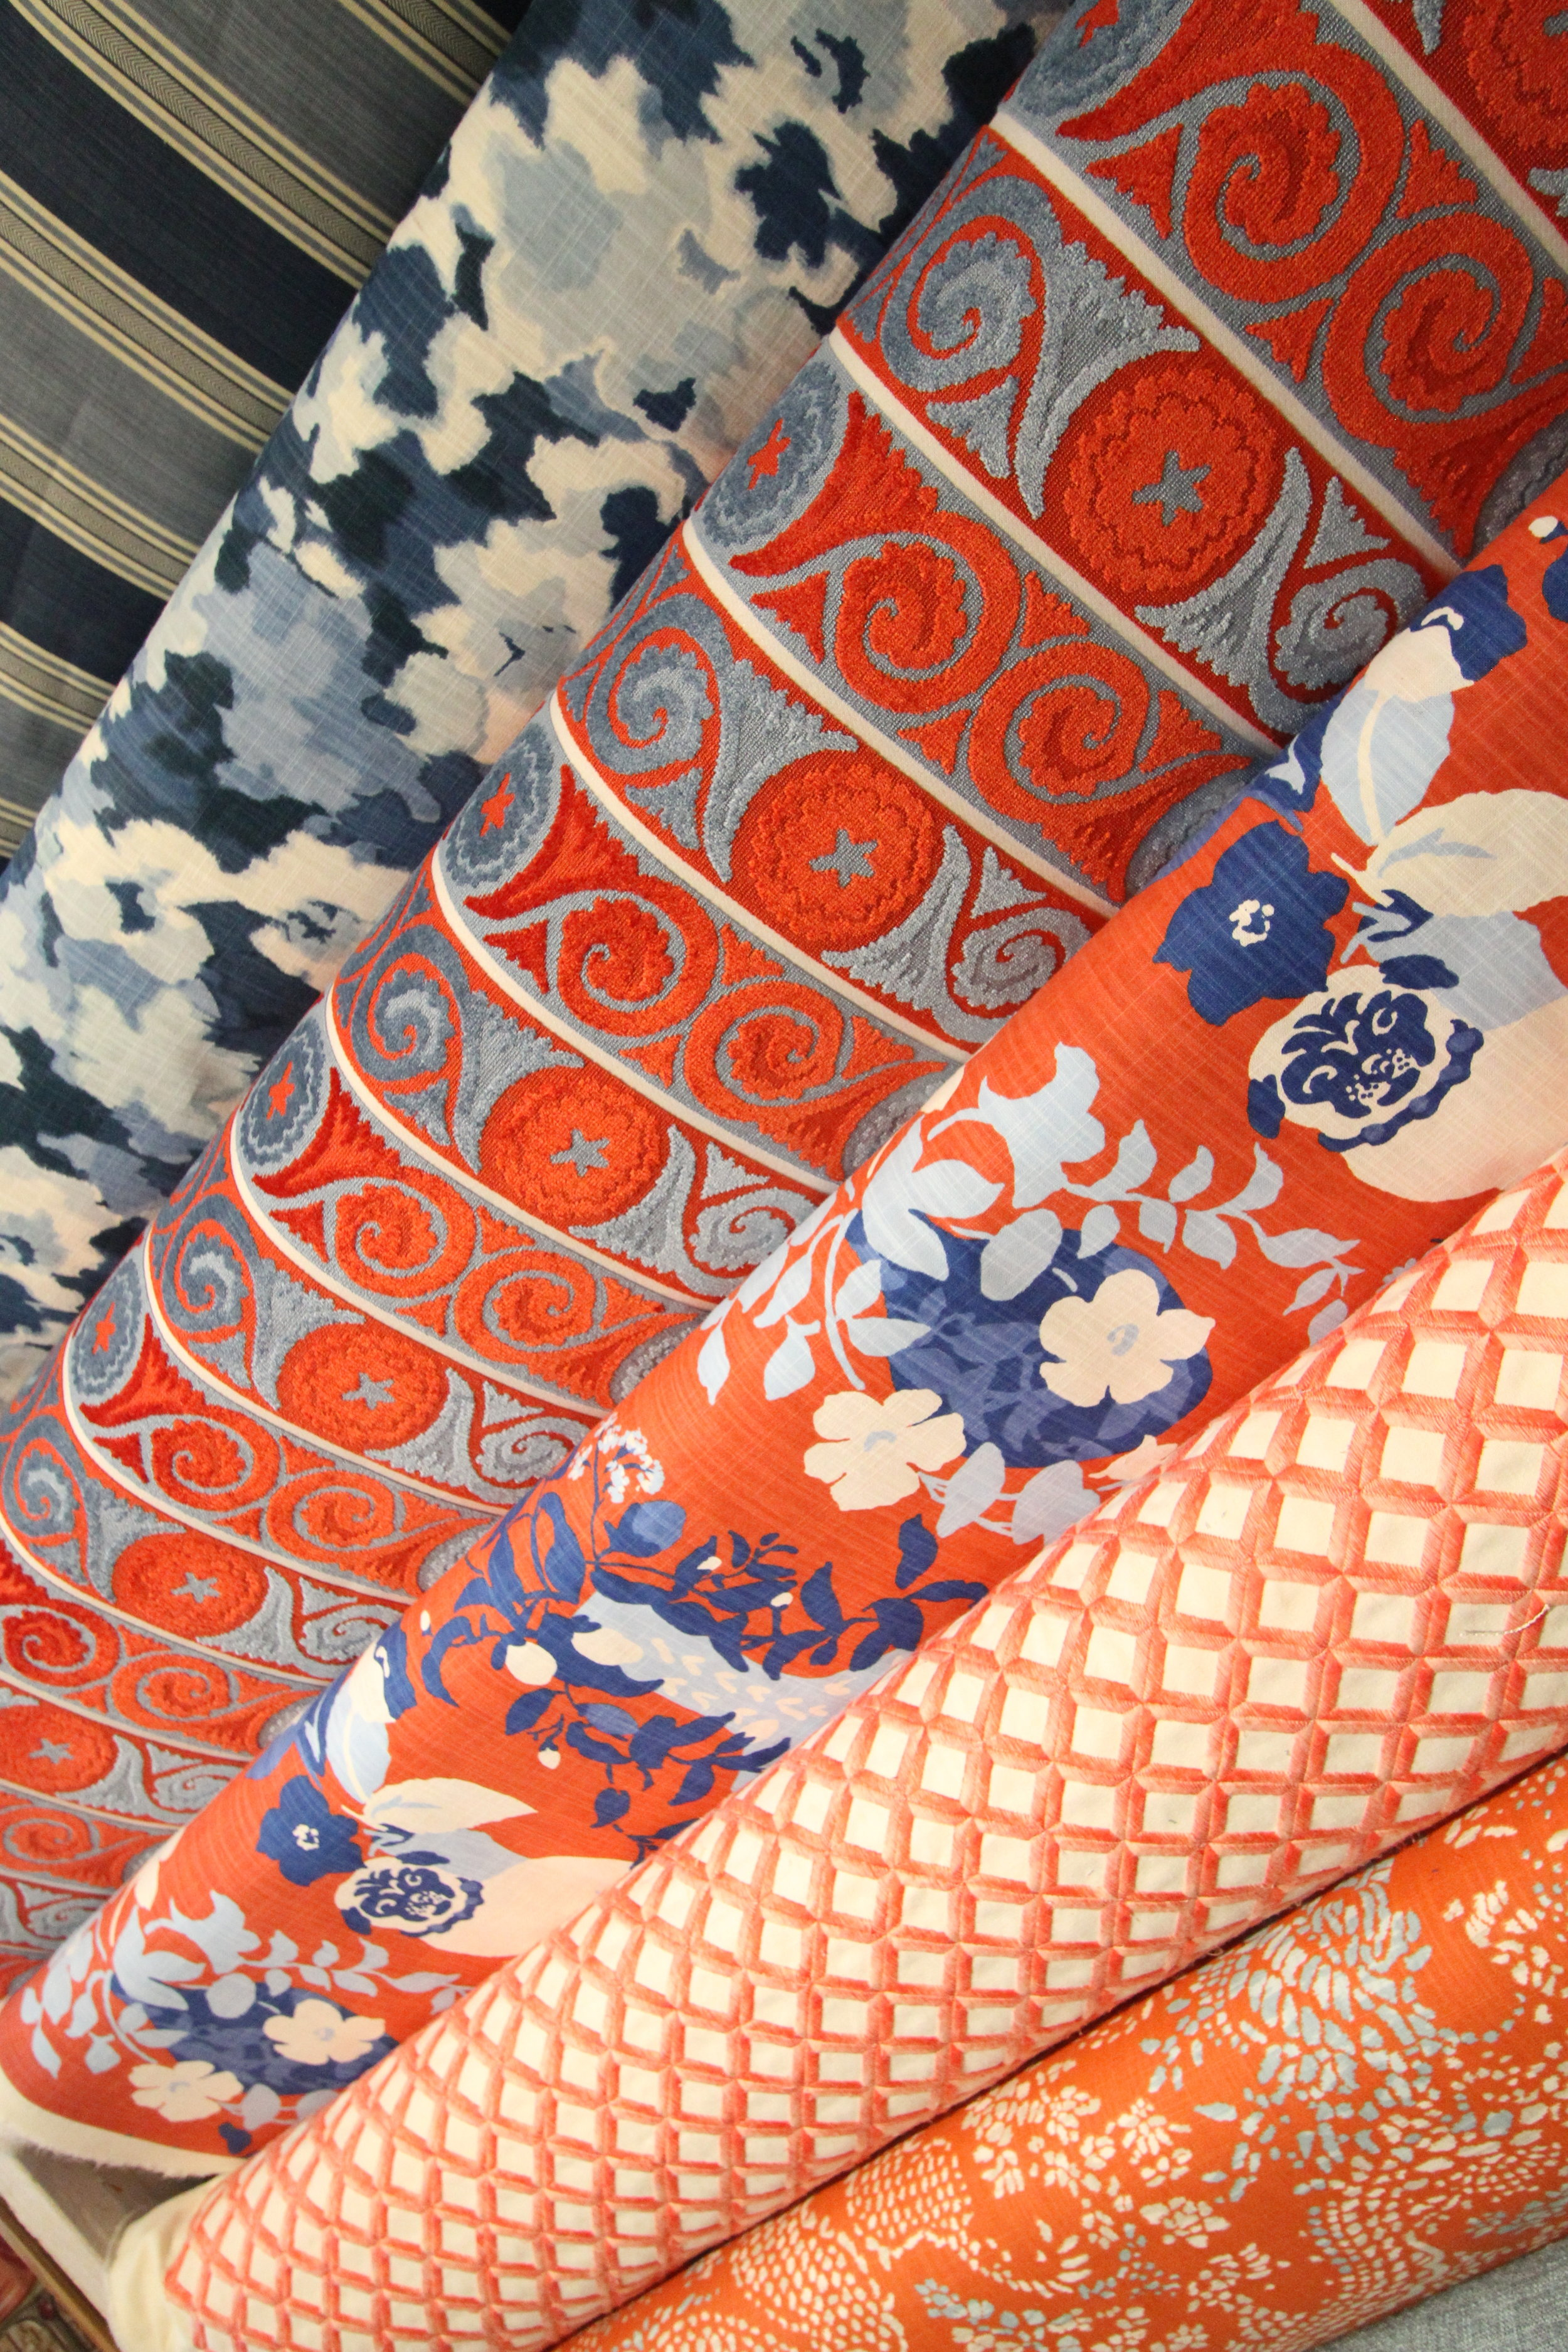 Upholstery Fabric Mill Outlet Village